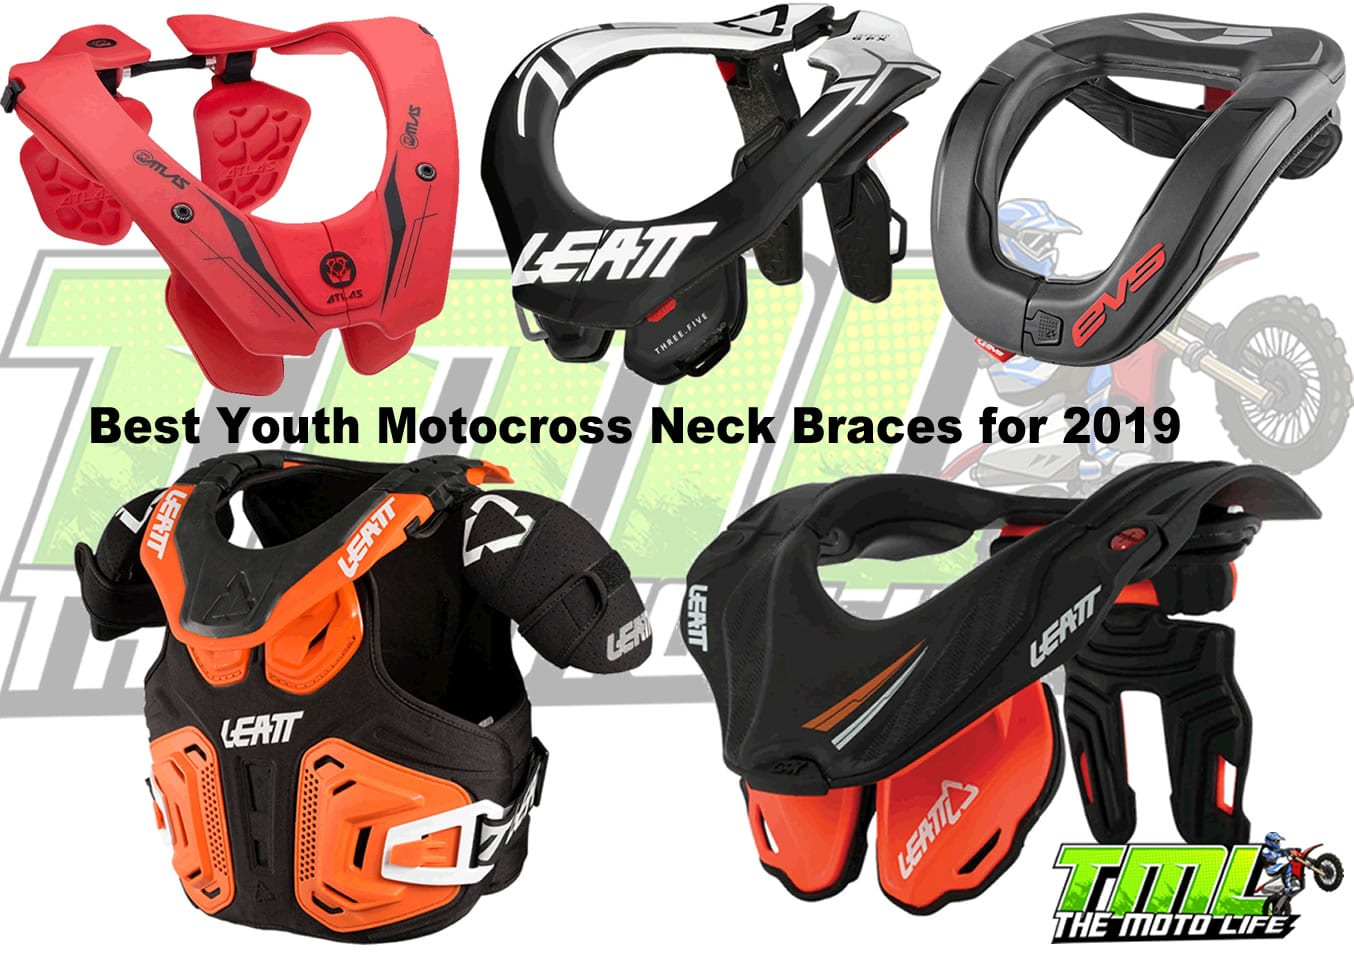 best youth motocross neck brace review 2019